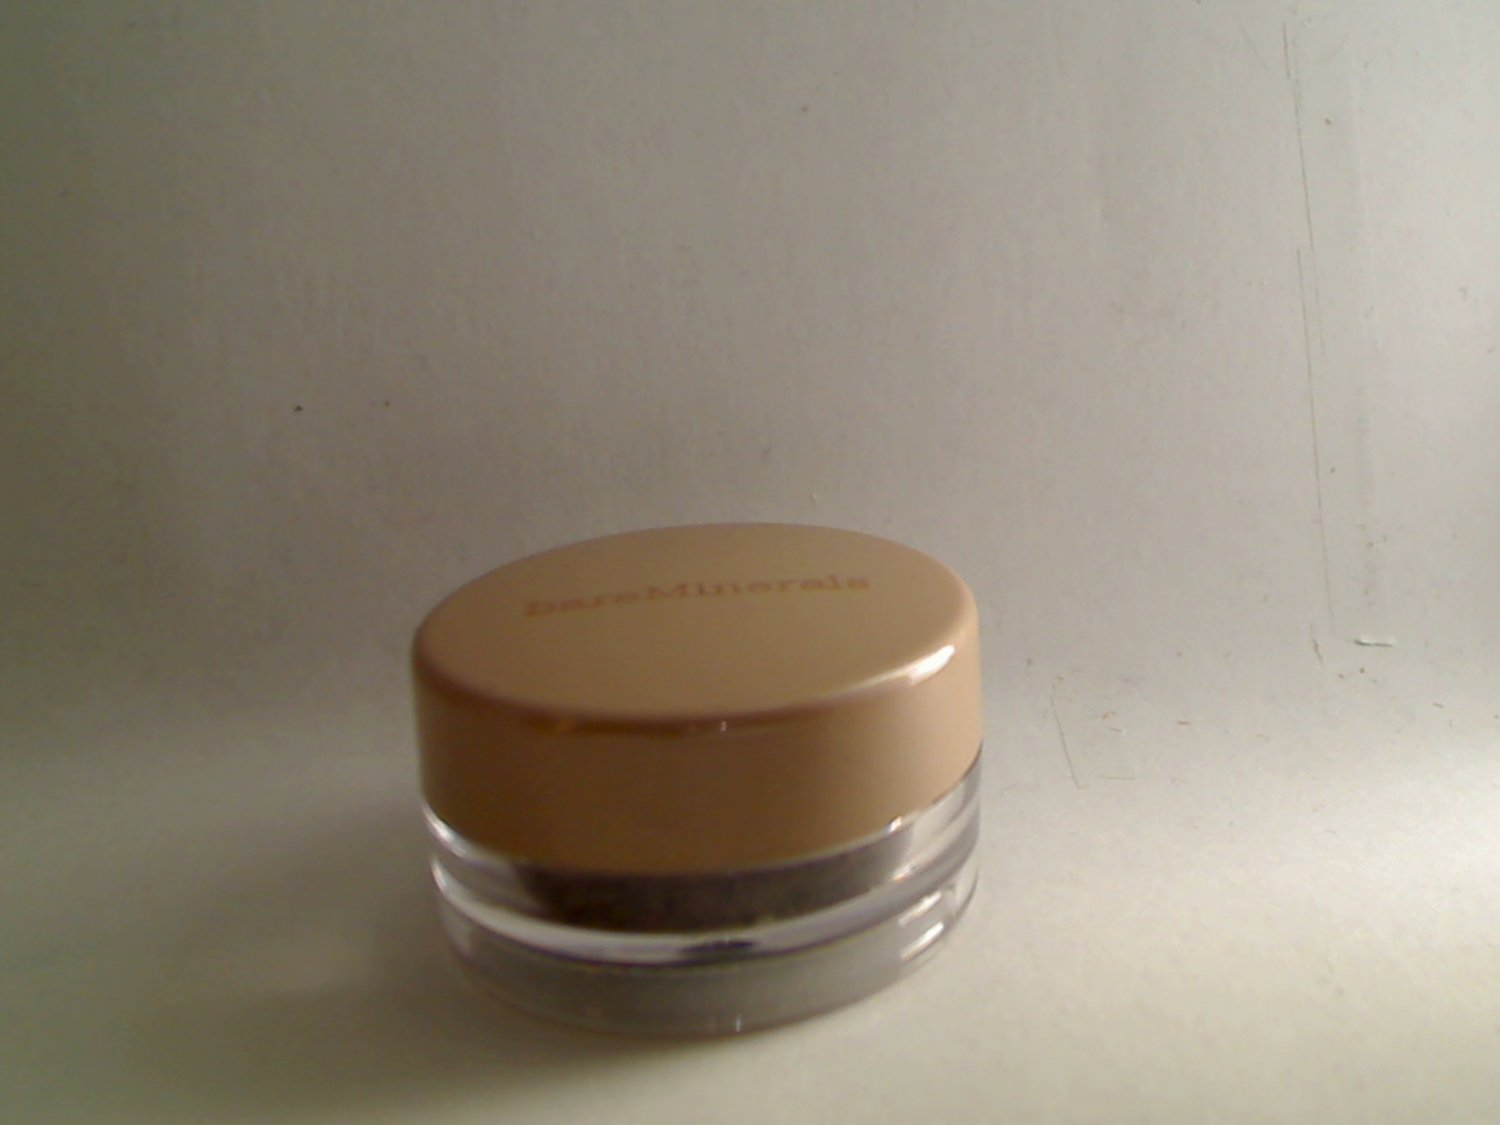 Bare Escentuals bareMinerals Eyecolor Minerals Eye Shadow Magnificent Pearl discontinued